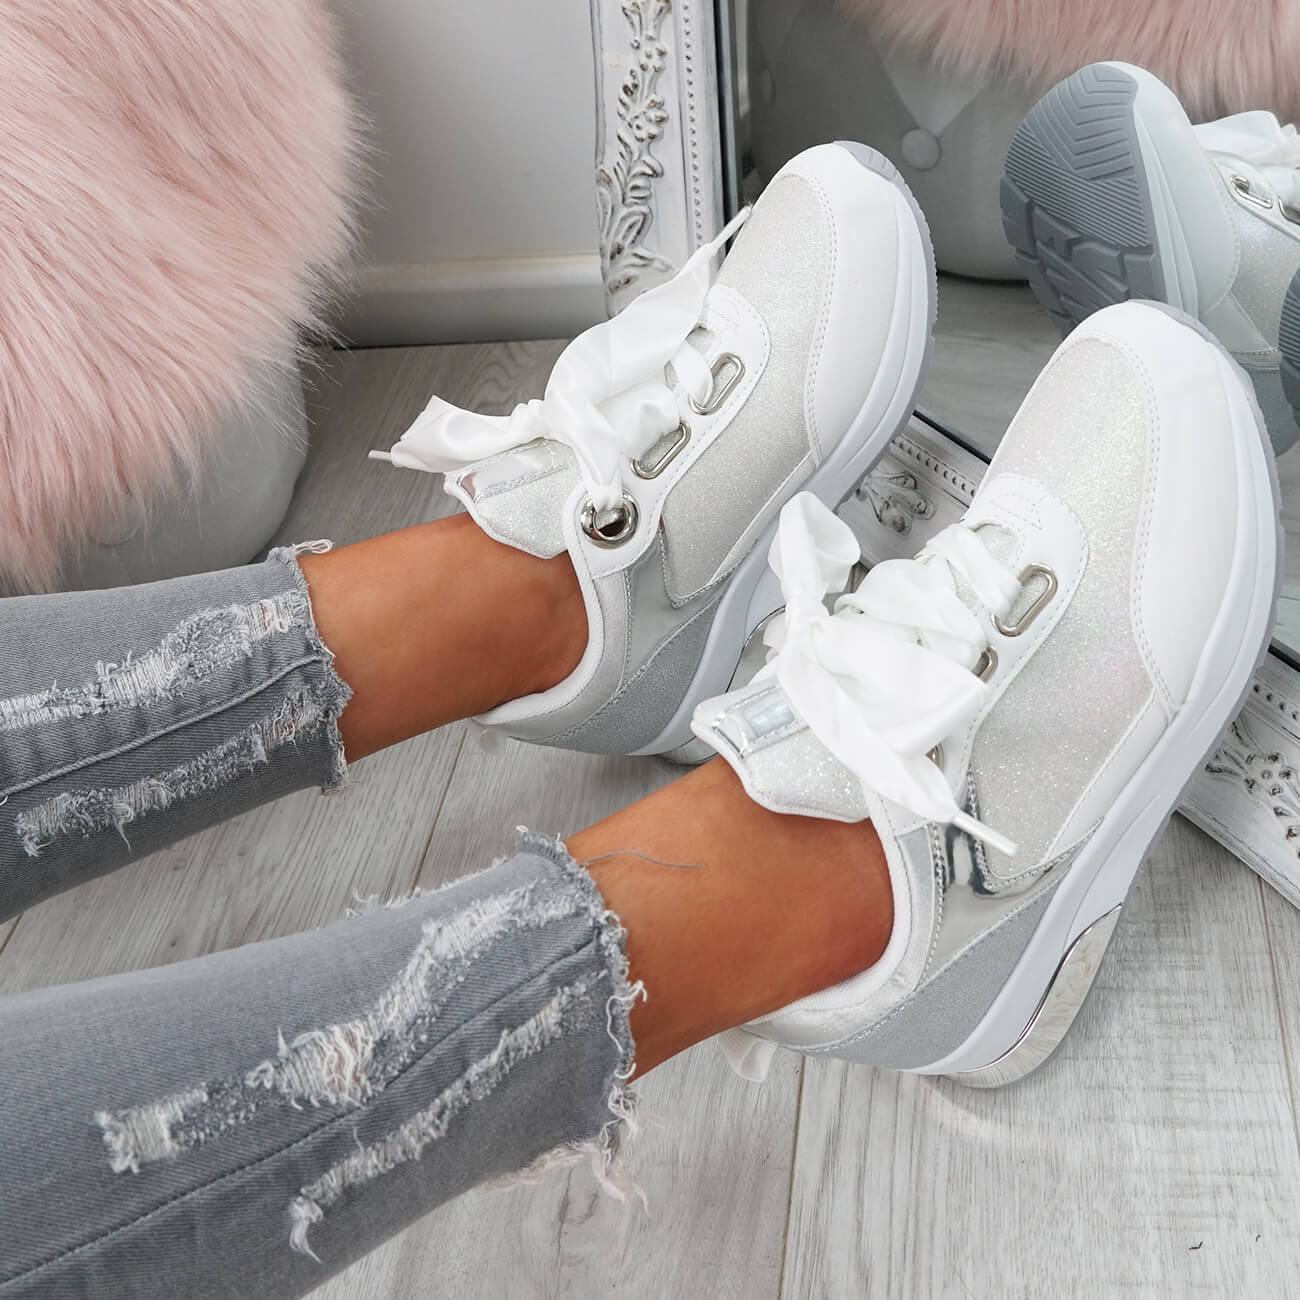 WOMENS-LADIES-RIBBON-TRAINERS-GLITTER-SPARKLE-SNEAKERS-RUNNING-FASHION-SHOES thumbnail 18